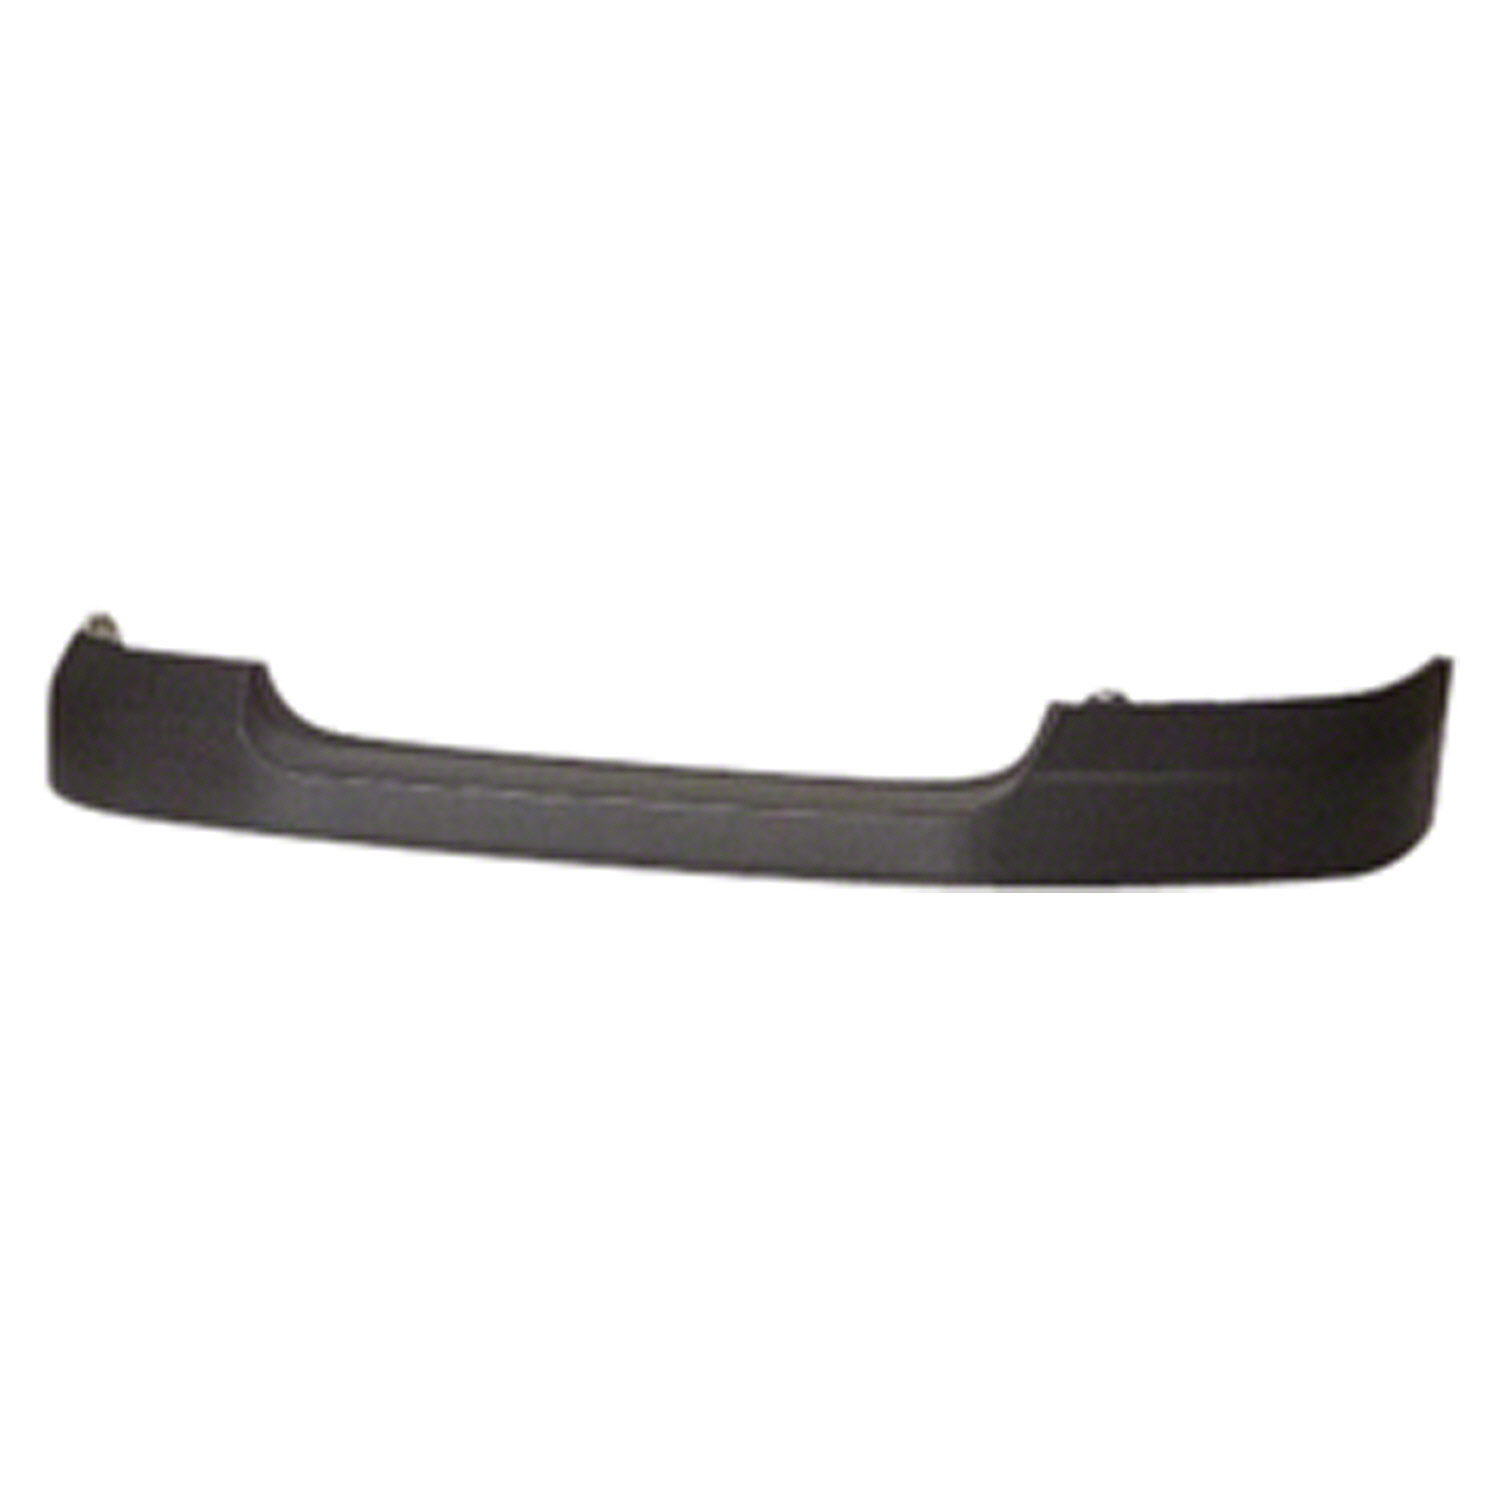 CAPA Front Bumper Cover Compatible with FORD F-150 2009-2014 Upper Textured All Cab Types XL Model